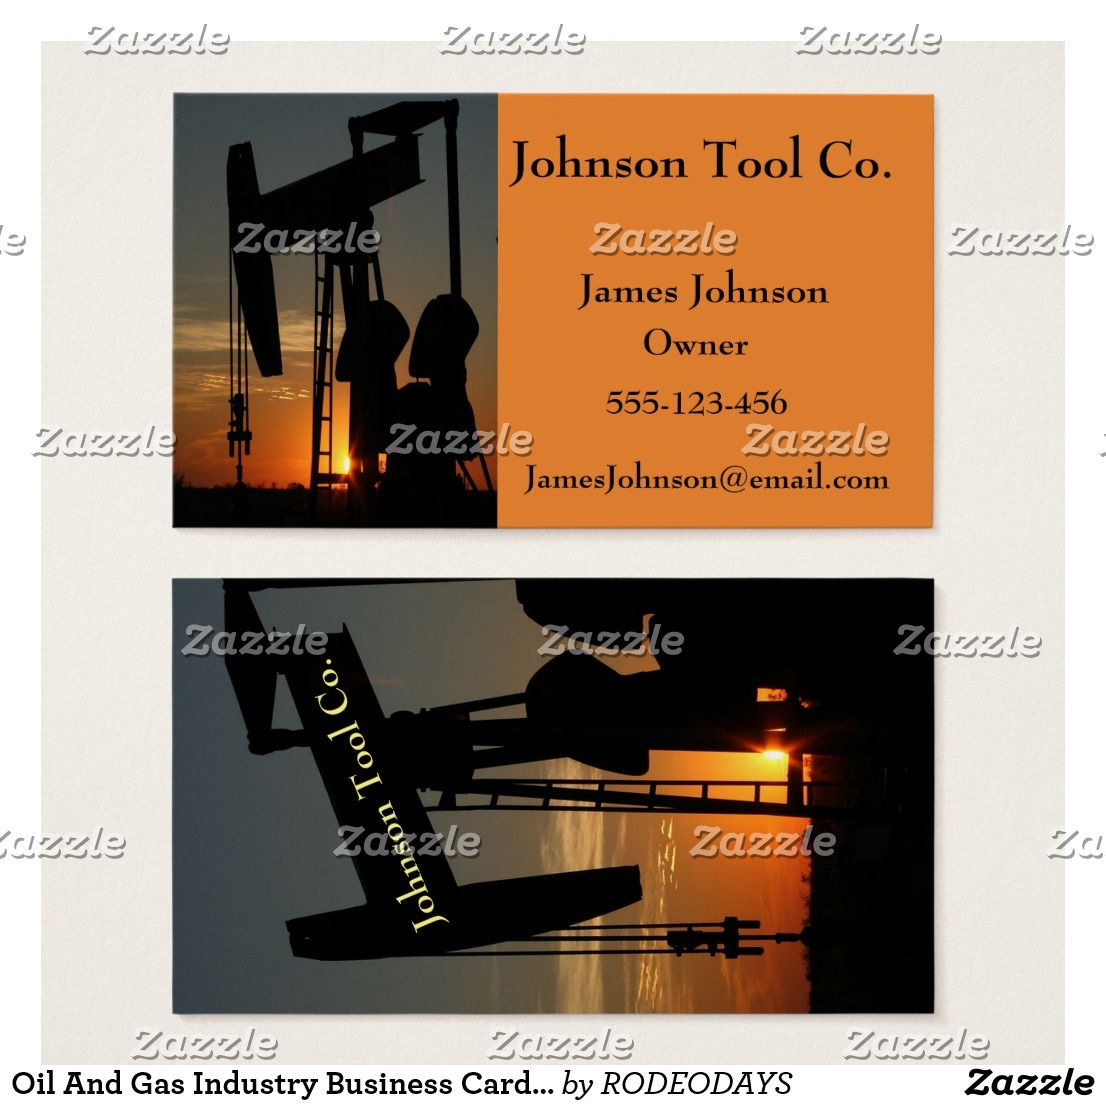 Oil And Gas Industry Business Cards 2 Side | Oil and Gas Drilling ...